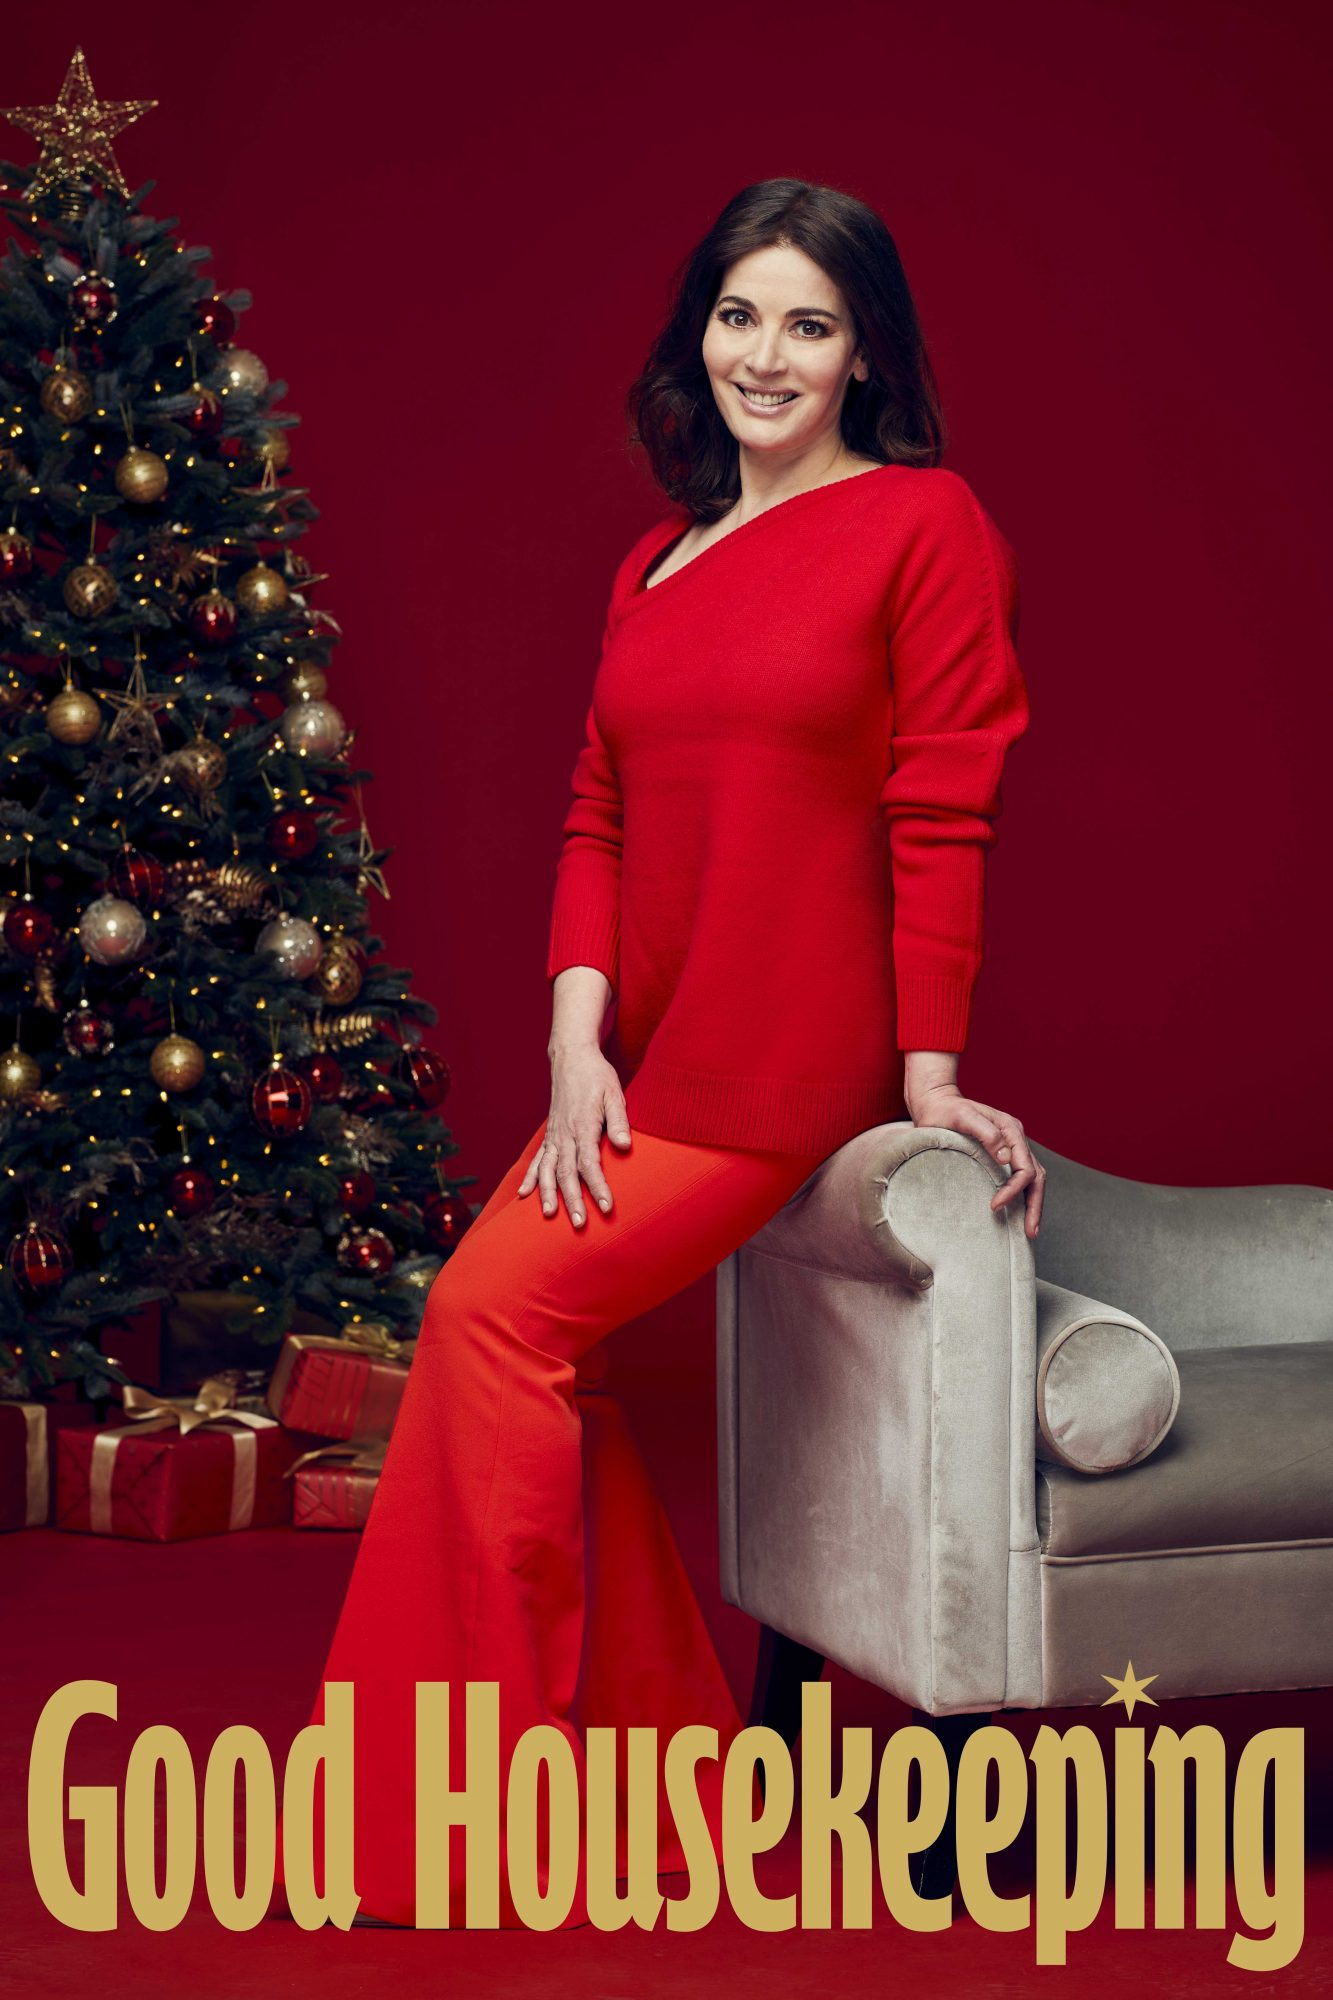 Nigella Lawson, Good Housekeeping, Dec 2020; credit: David Venni